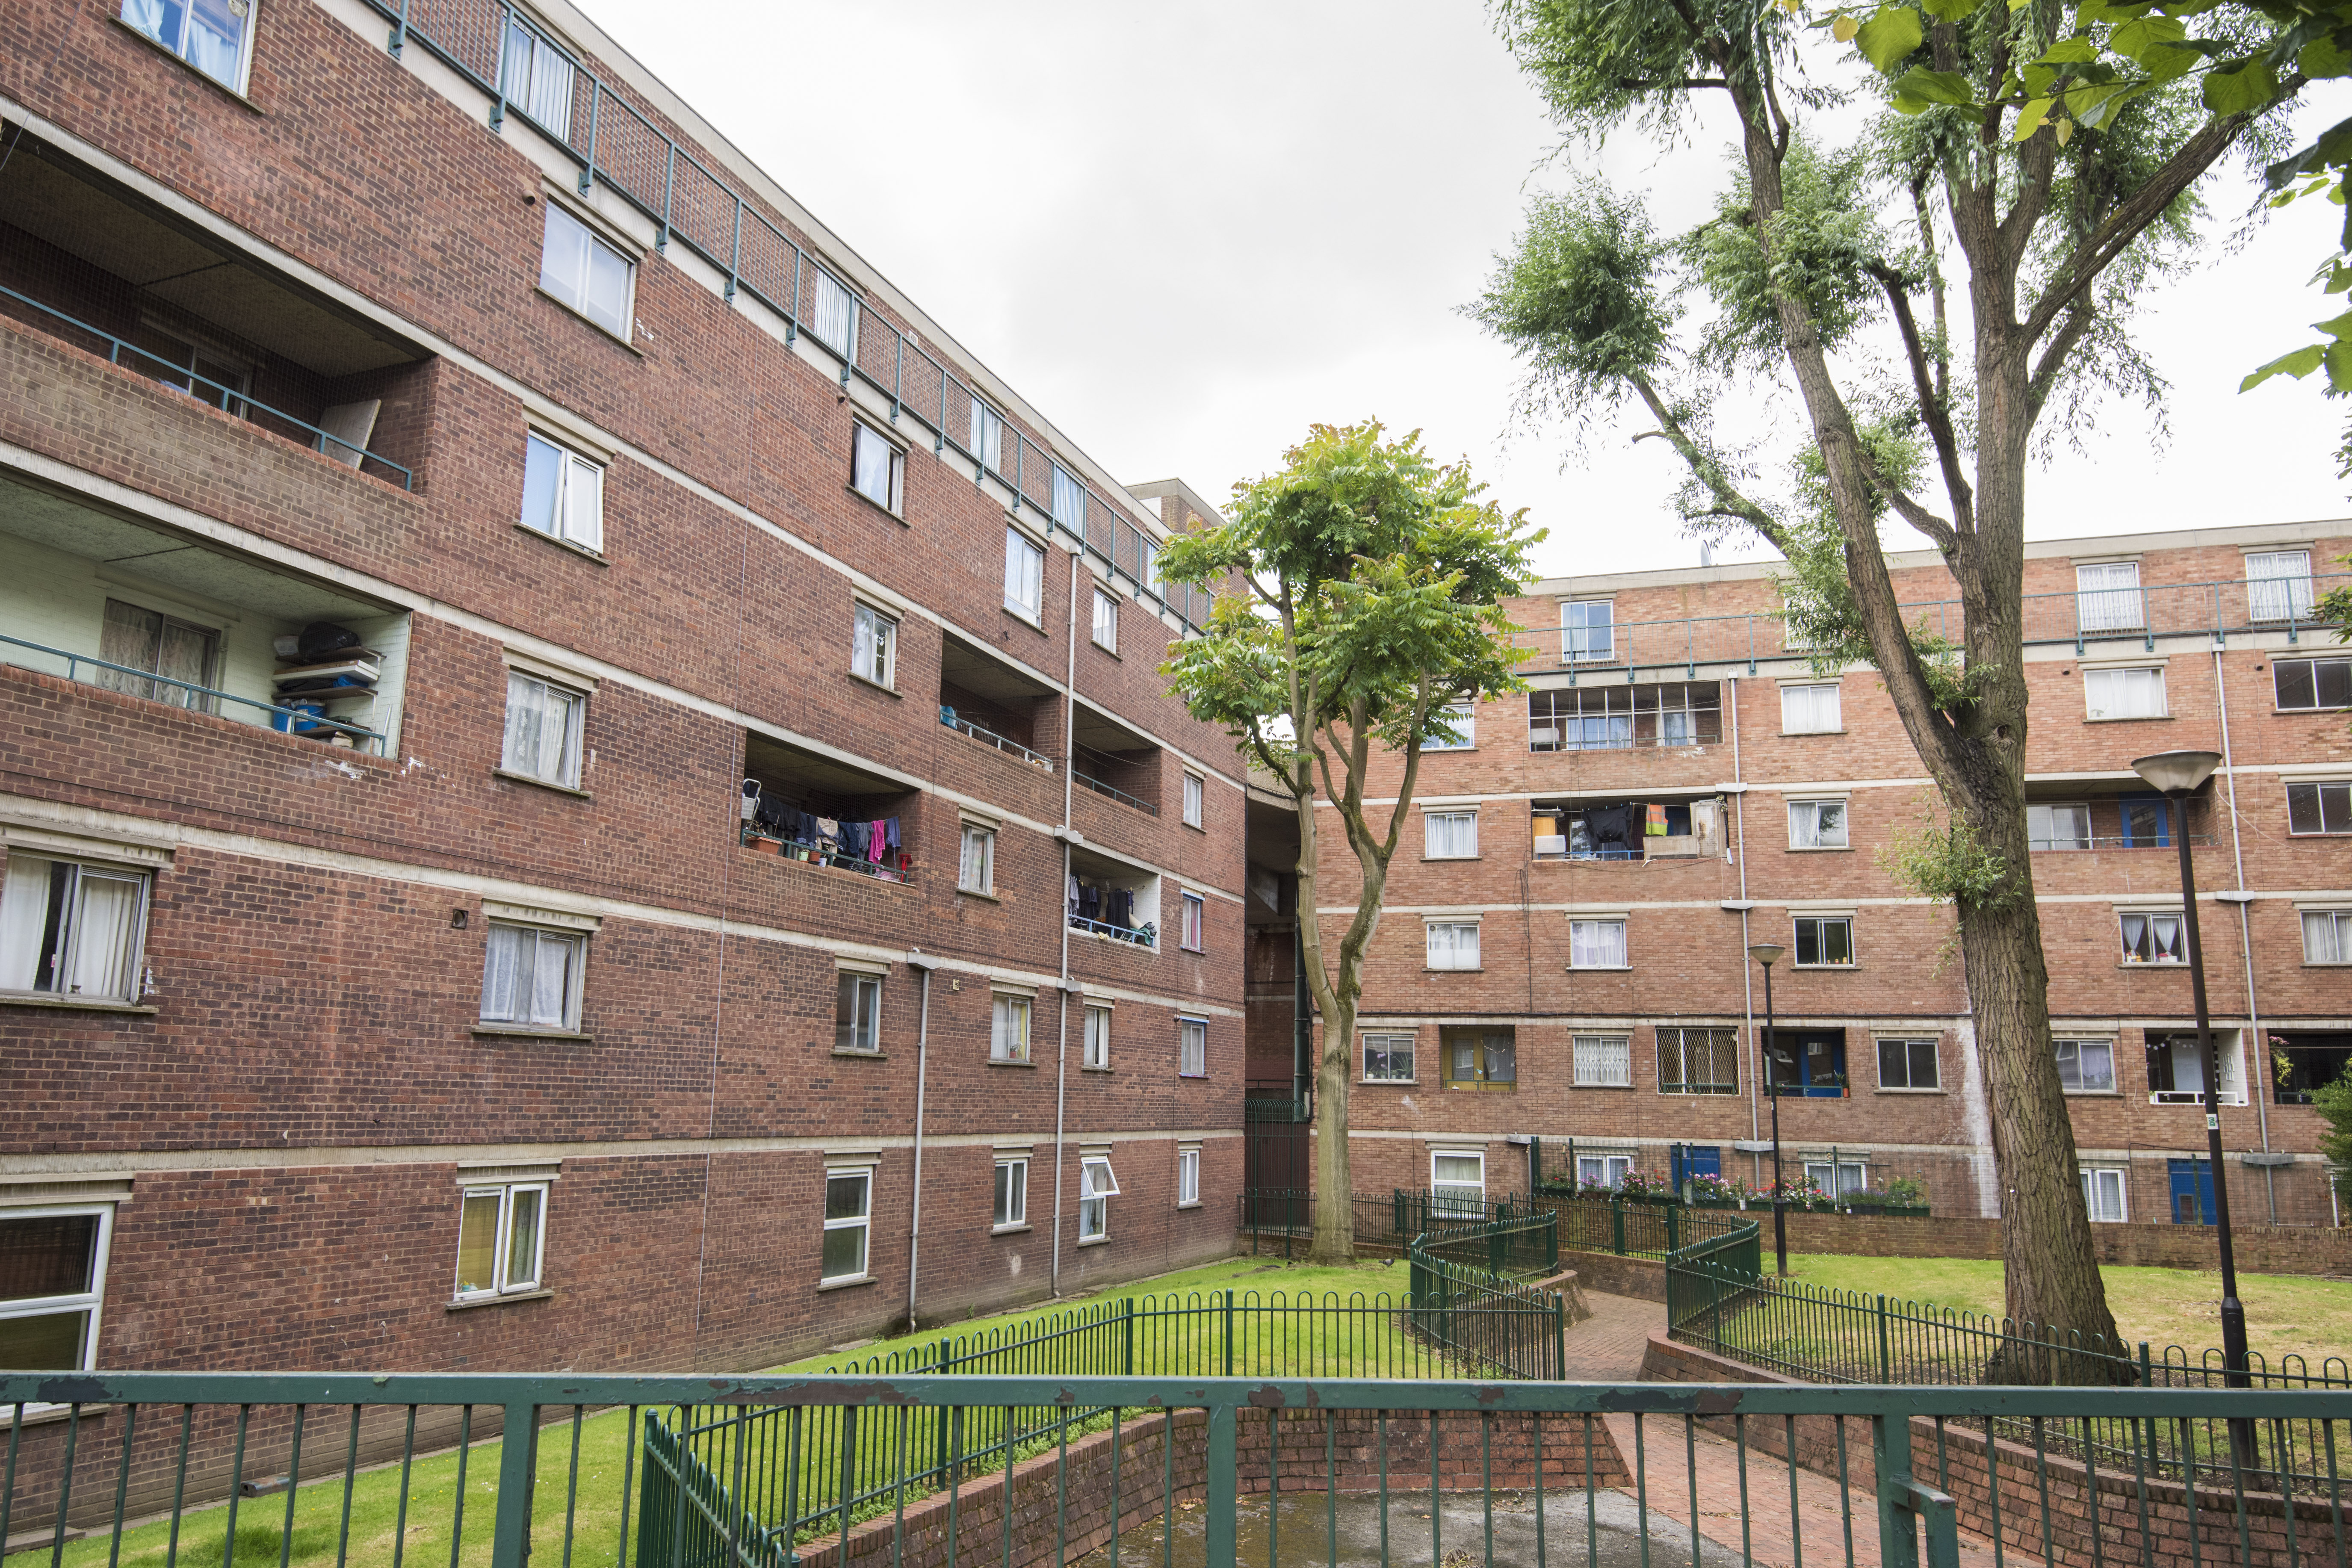 General view of the Wornington Green Estate in North Kensington, London. The estate is in the Golborne Ward, which ranks as the most deprived ward in the capital. The borough of Kensington and Chelsea is one of the most polarised in Great Britain, with some of the most expensive real estate in the UK just a short walk from several of the most deprived wards in the country - including the area around the Grenfell Tower. Picture date: Tuesday July 11th, 2017. Photo credit should read: Matt Crossick/ EMPICS Entertainment.